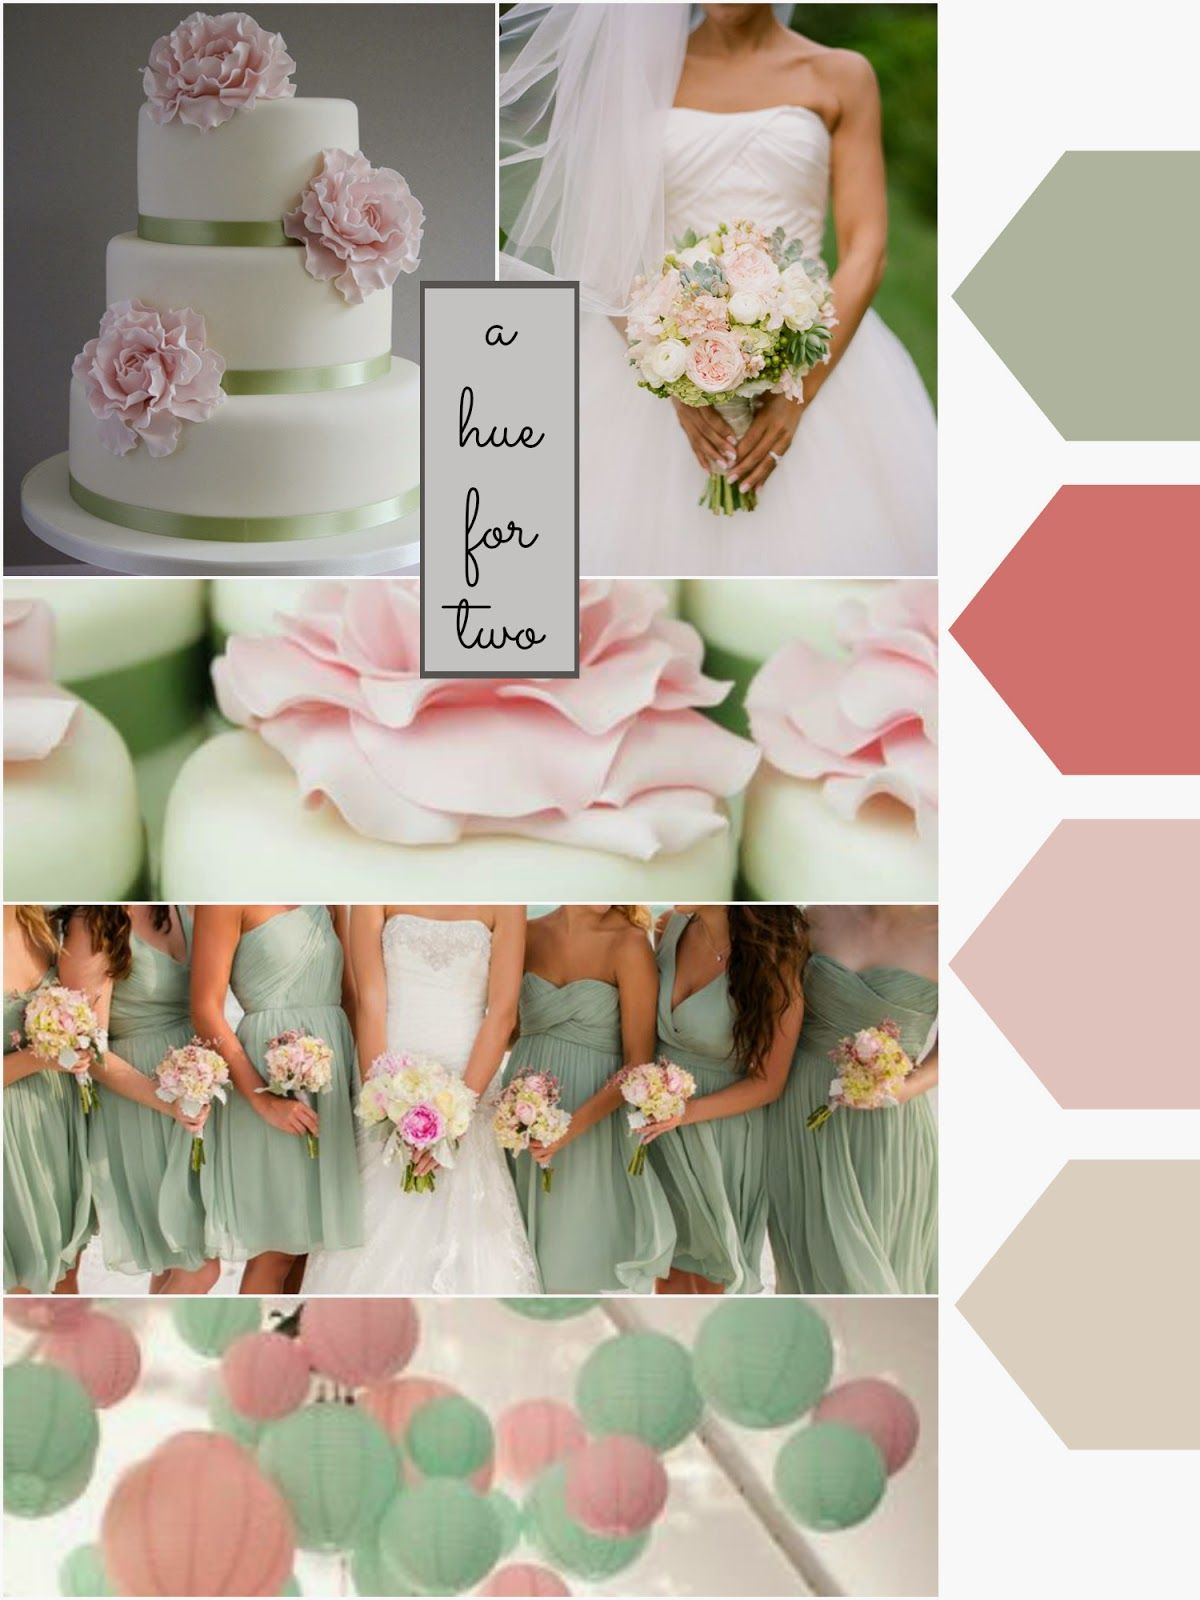 Wedding Colour Scheme Pastels Light Sage C And Pink A Hue